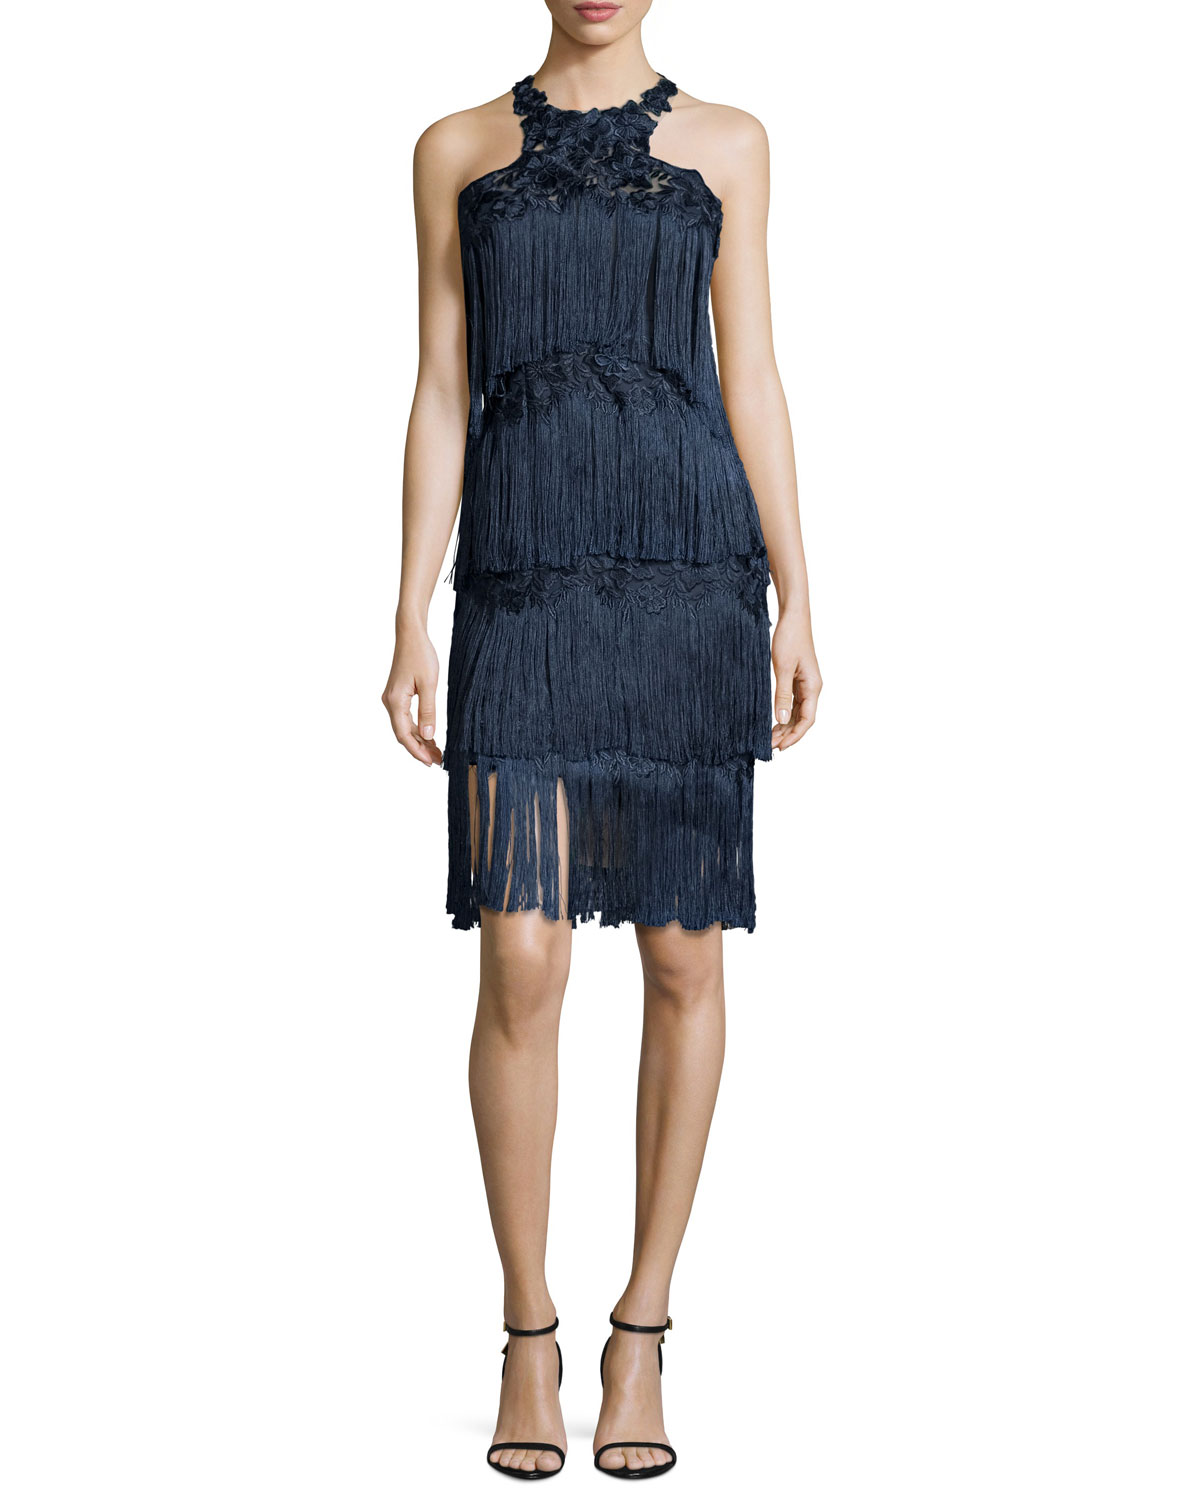 feb411f6f54f Marchesa Notte Sleeveless Tiered Fringe Cocktail Dress, Navy ...